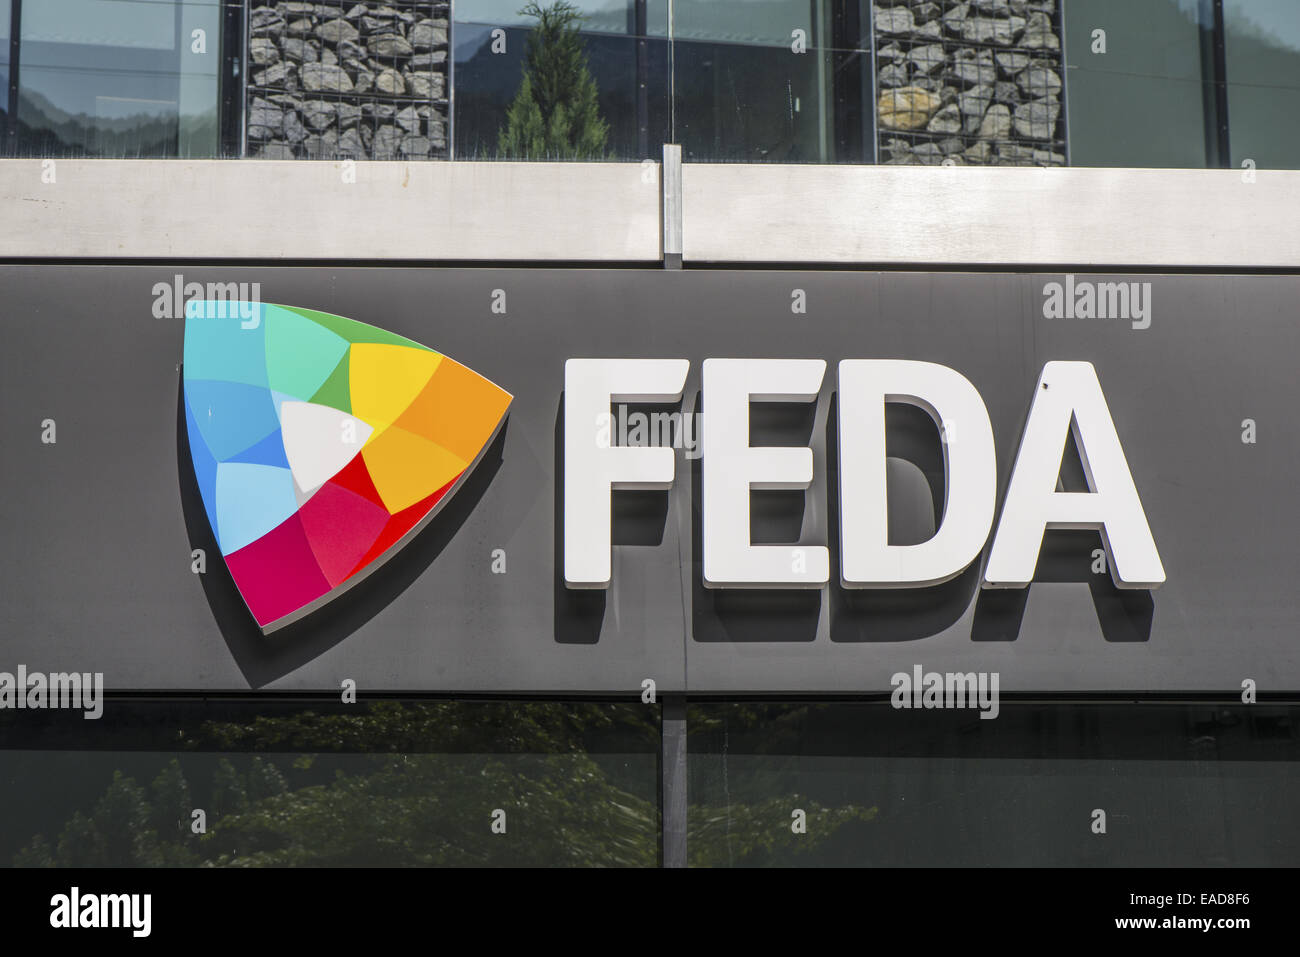 FEDA, Consell General, Andorra la Vella, capital city of Andorra, Andorra Stock Photo